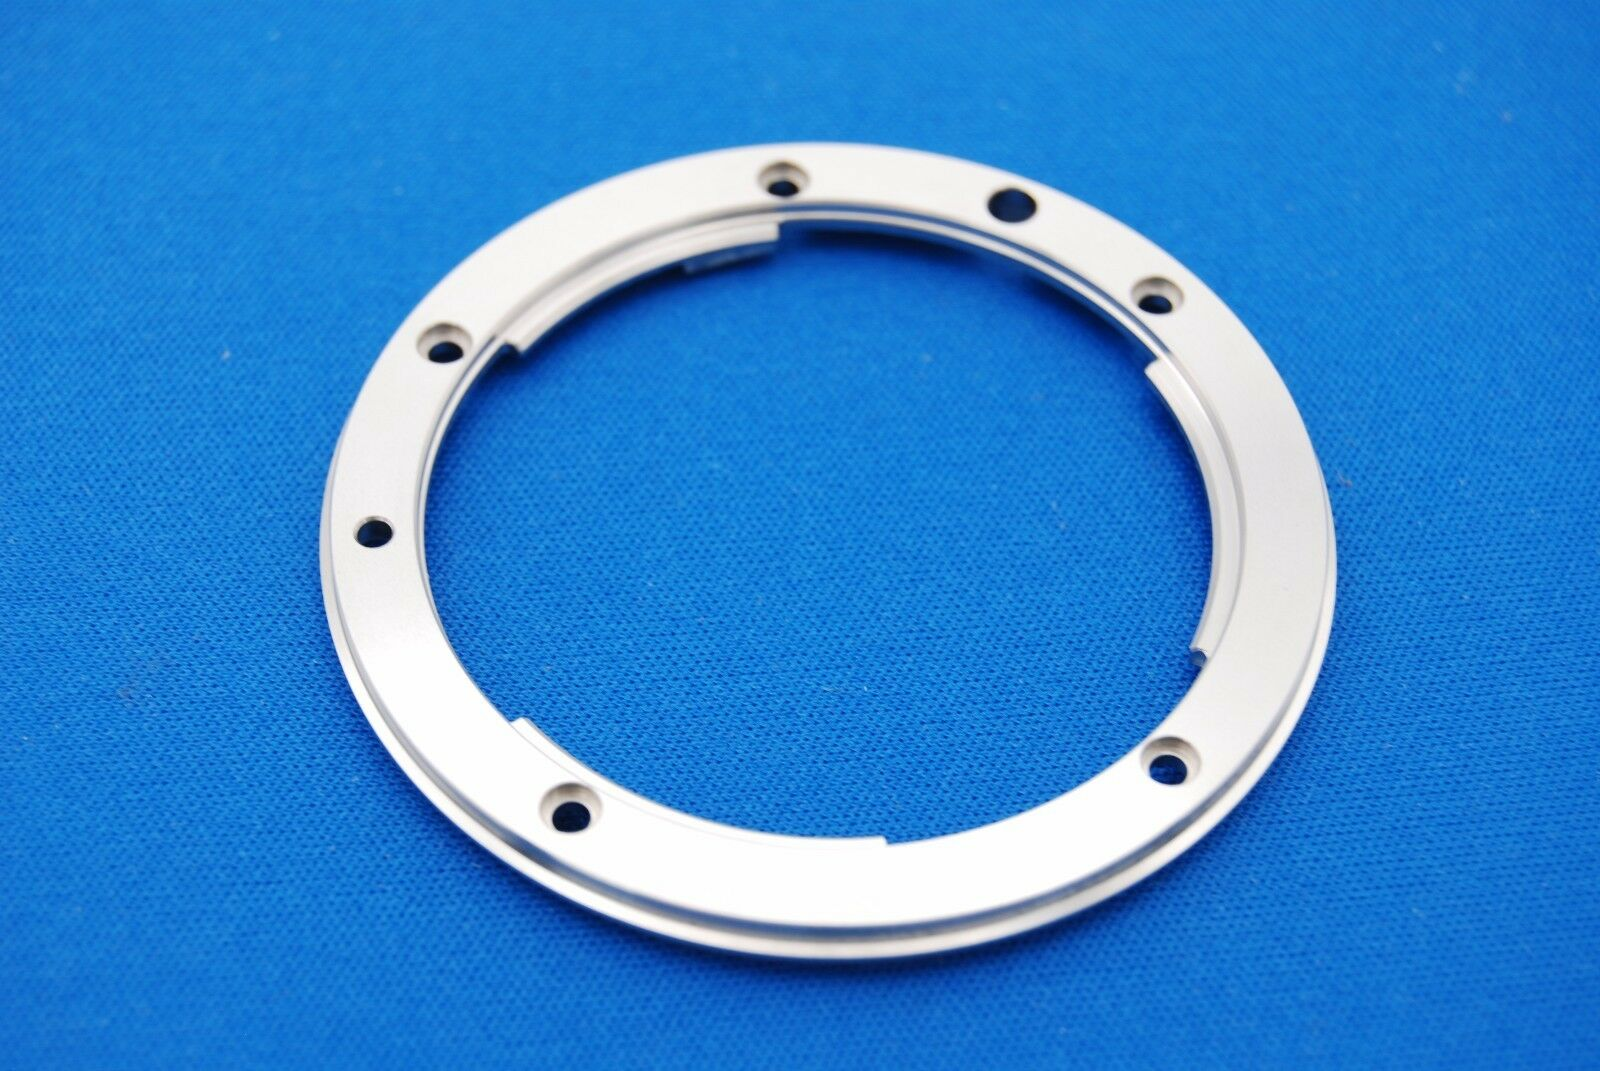 Nikon D3s D4 D4s Bayonet Lens Mount Ring Assembly Replacement Repair Af Micro Nikkor 60mam F 28d 1 Of 2only Available